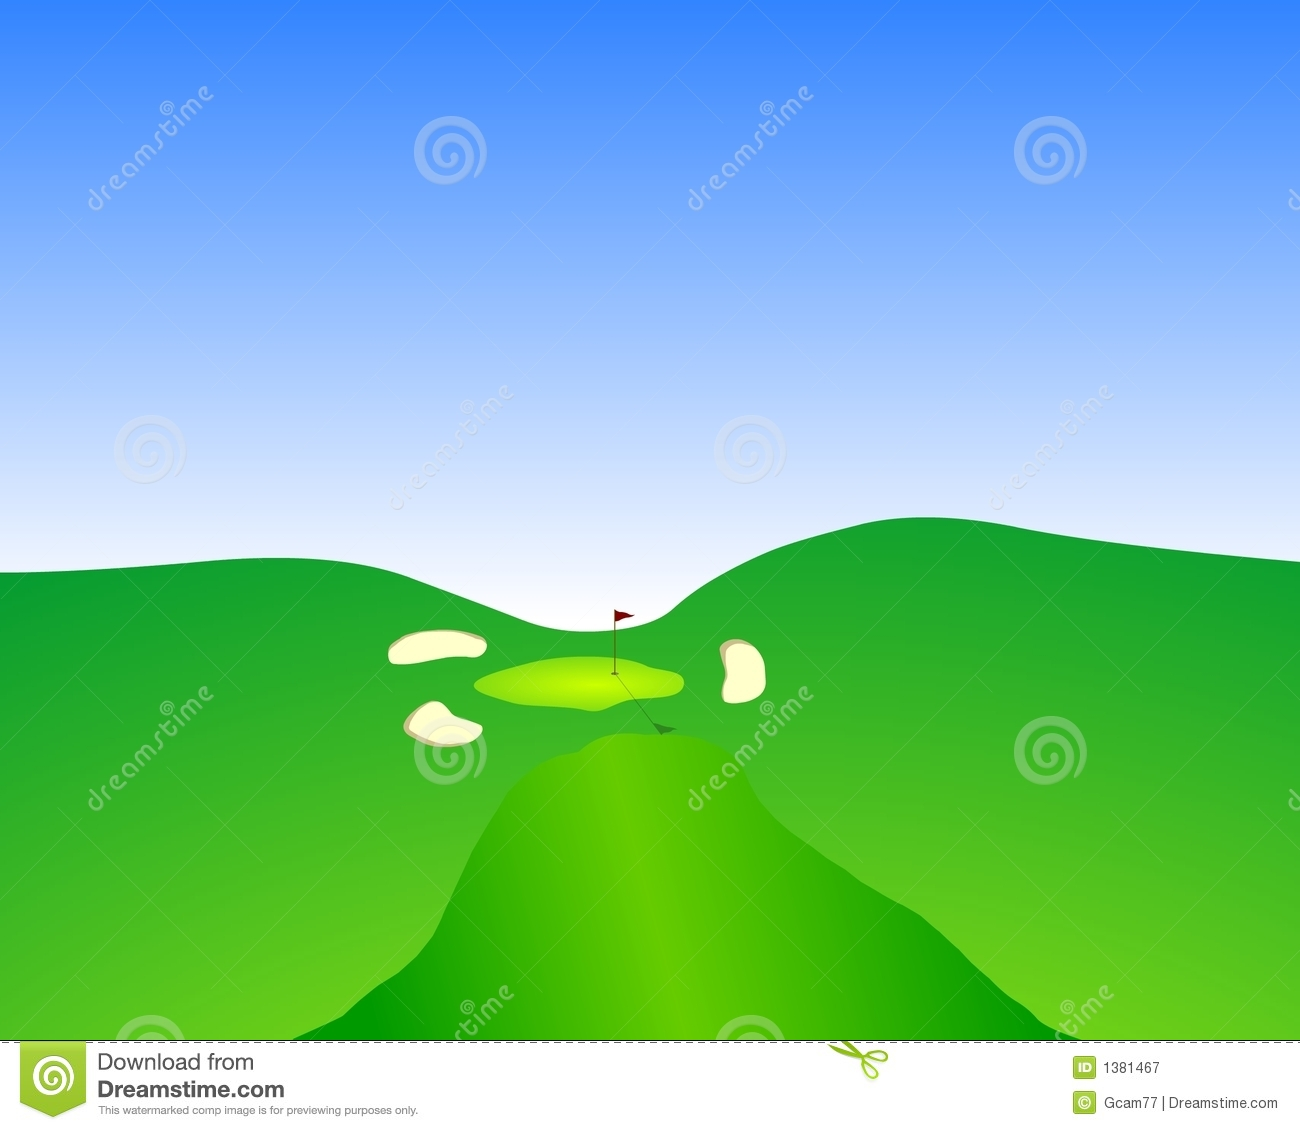 Fairway Approach Royalty Free Stock Photography Image